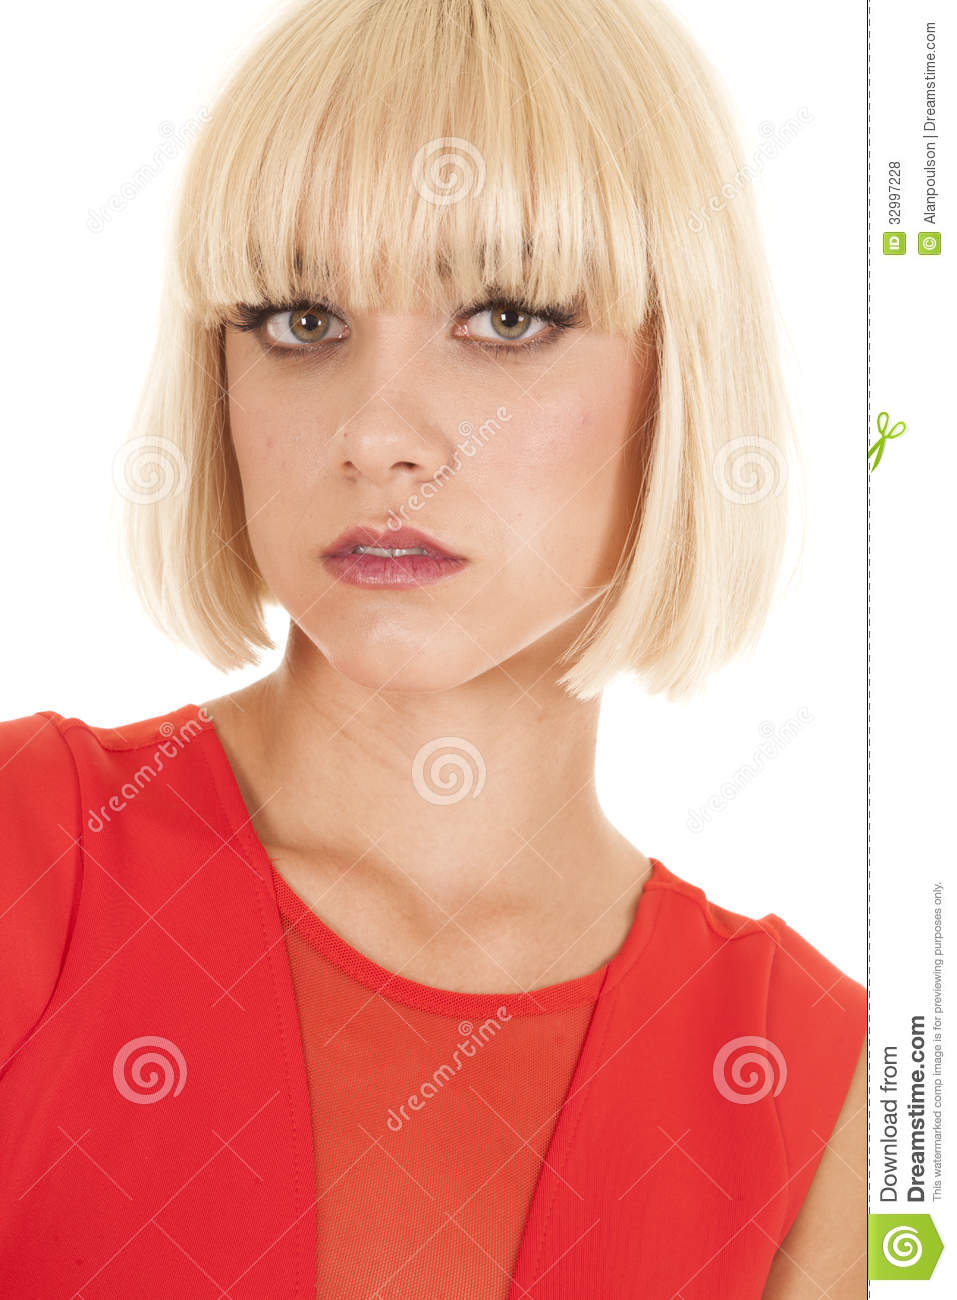 Woman Red Top Serious Expression Stock Photo